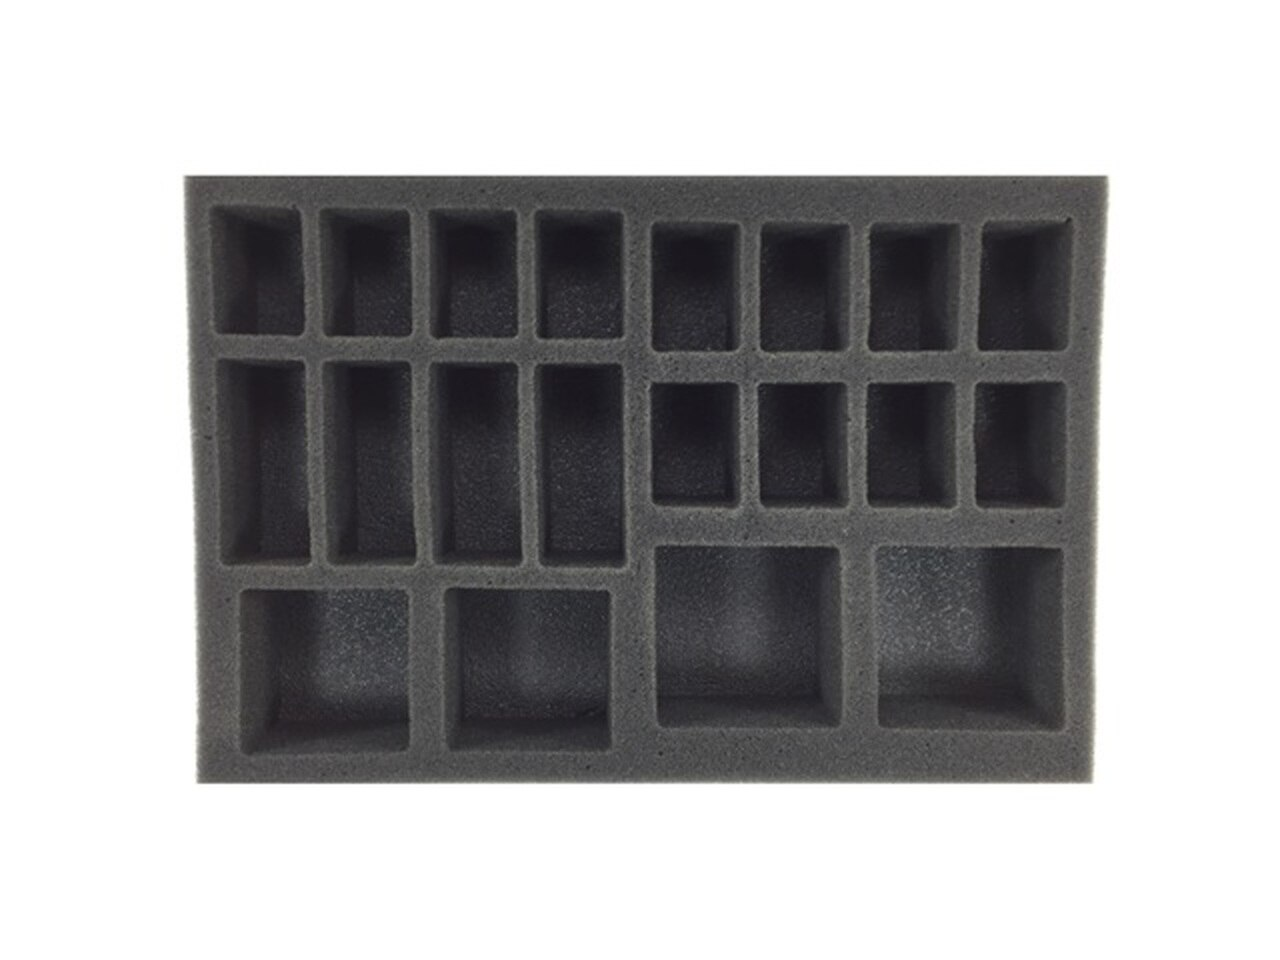 Battlefoam: Infinity Alternate Troop Foam Tray (BFS-2)